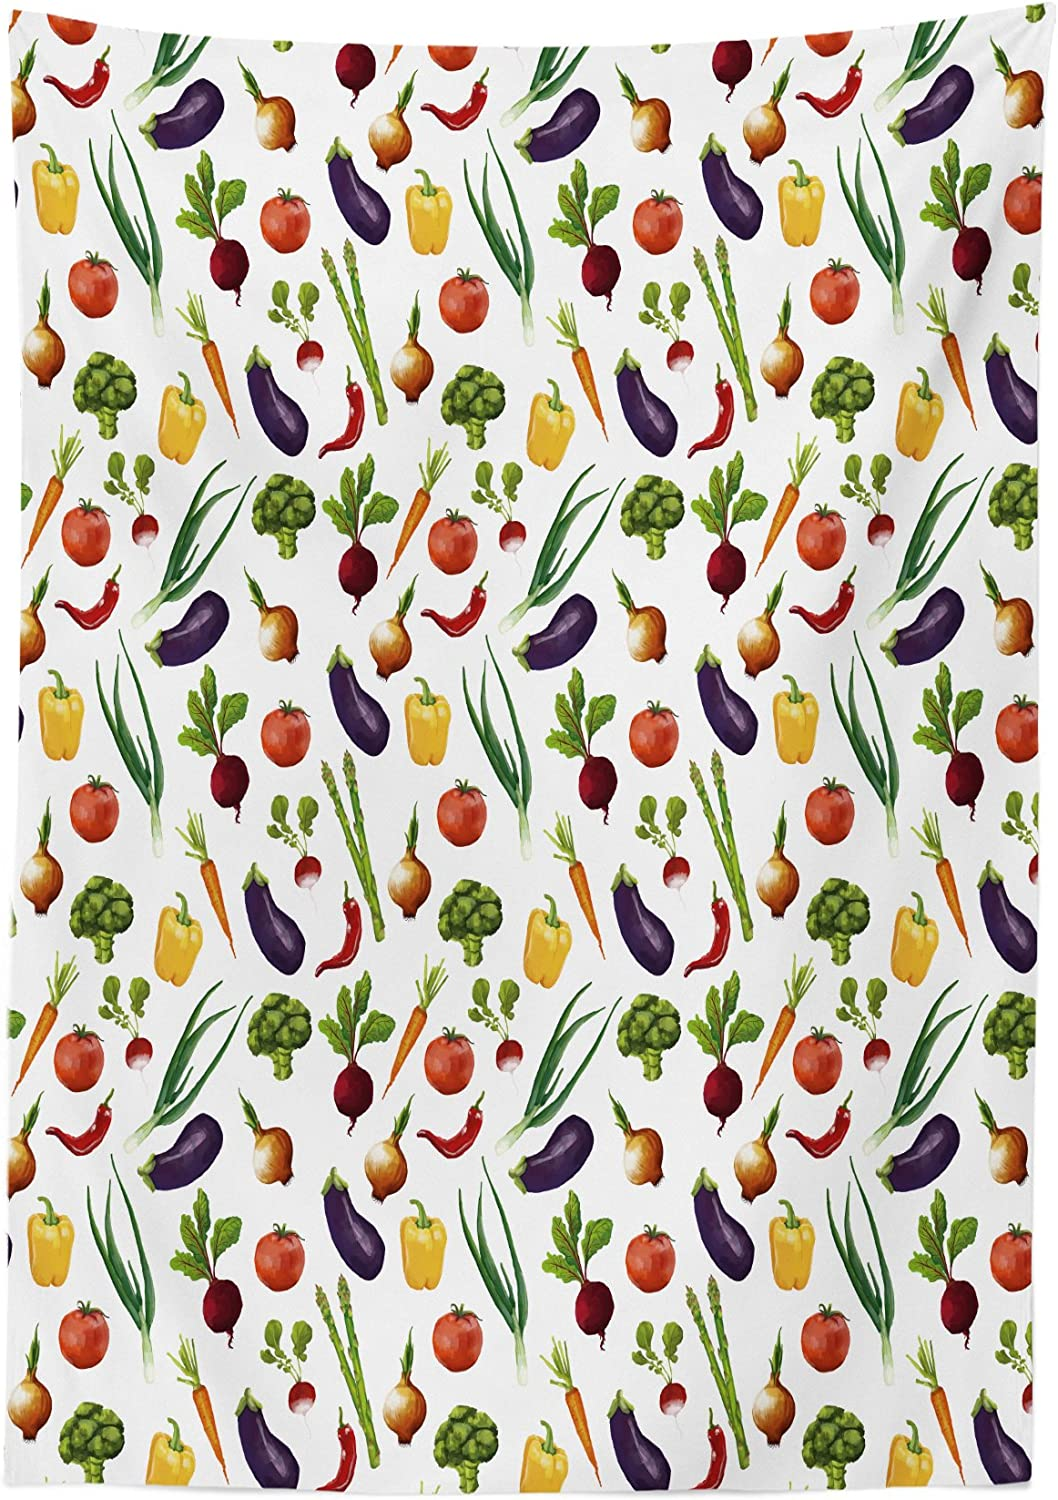 Lunarable Ladybugs Outdoor Tablecloth Pattern with Insects Symmetrical Background Little Ladybugs Branches Leaves Decorative Washable Picnic Table Cloth 58 X 84 Avocado Green